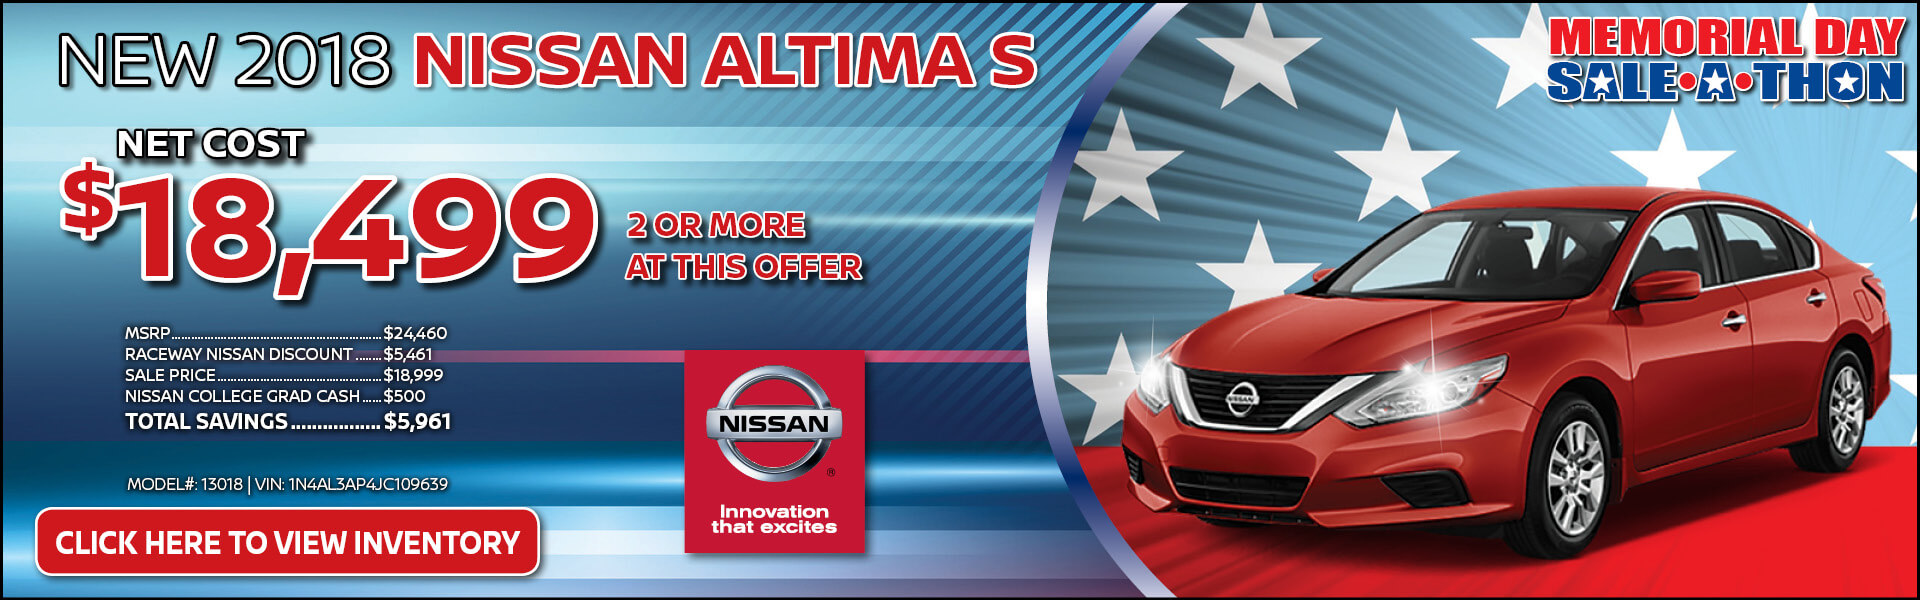 Nissan Altima $18,499 Purchase